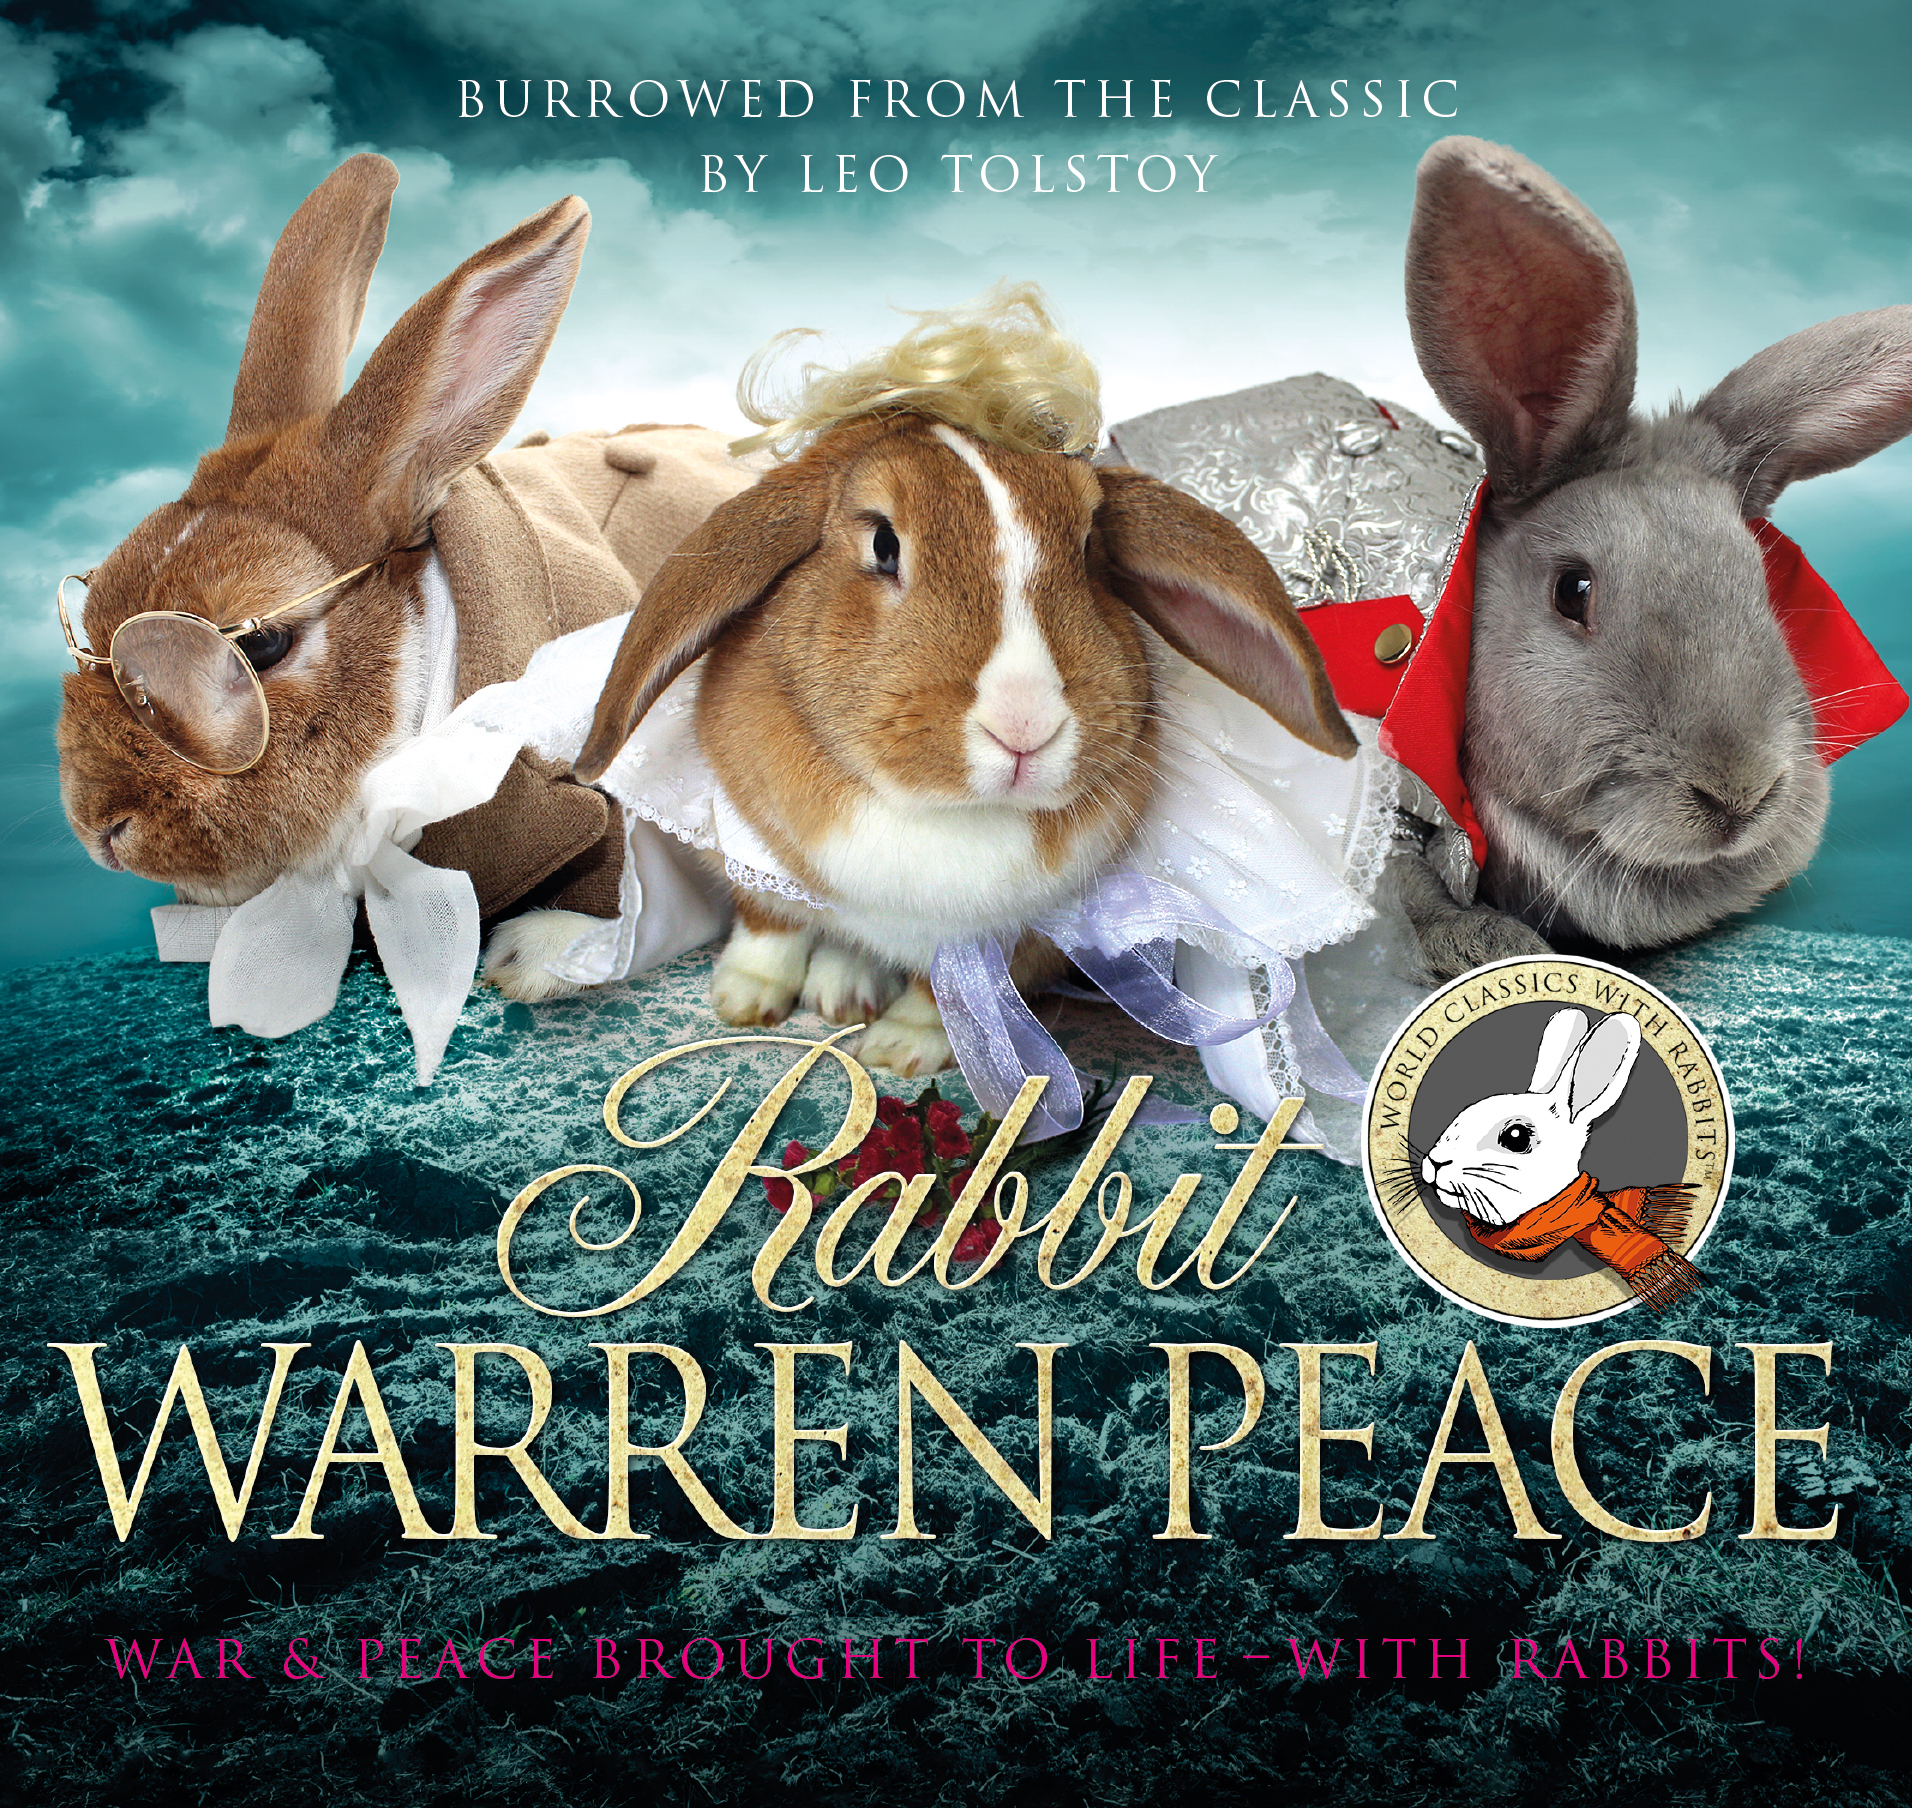 Rabbit Warren Peace